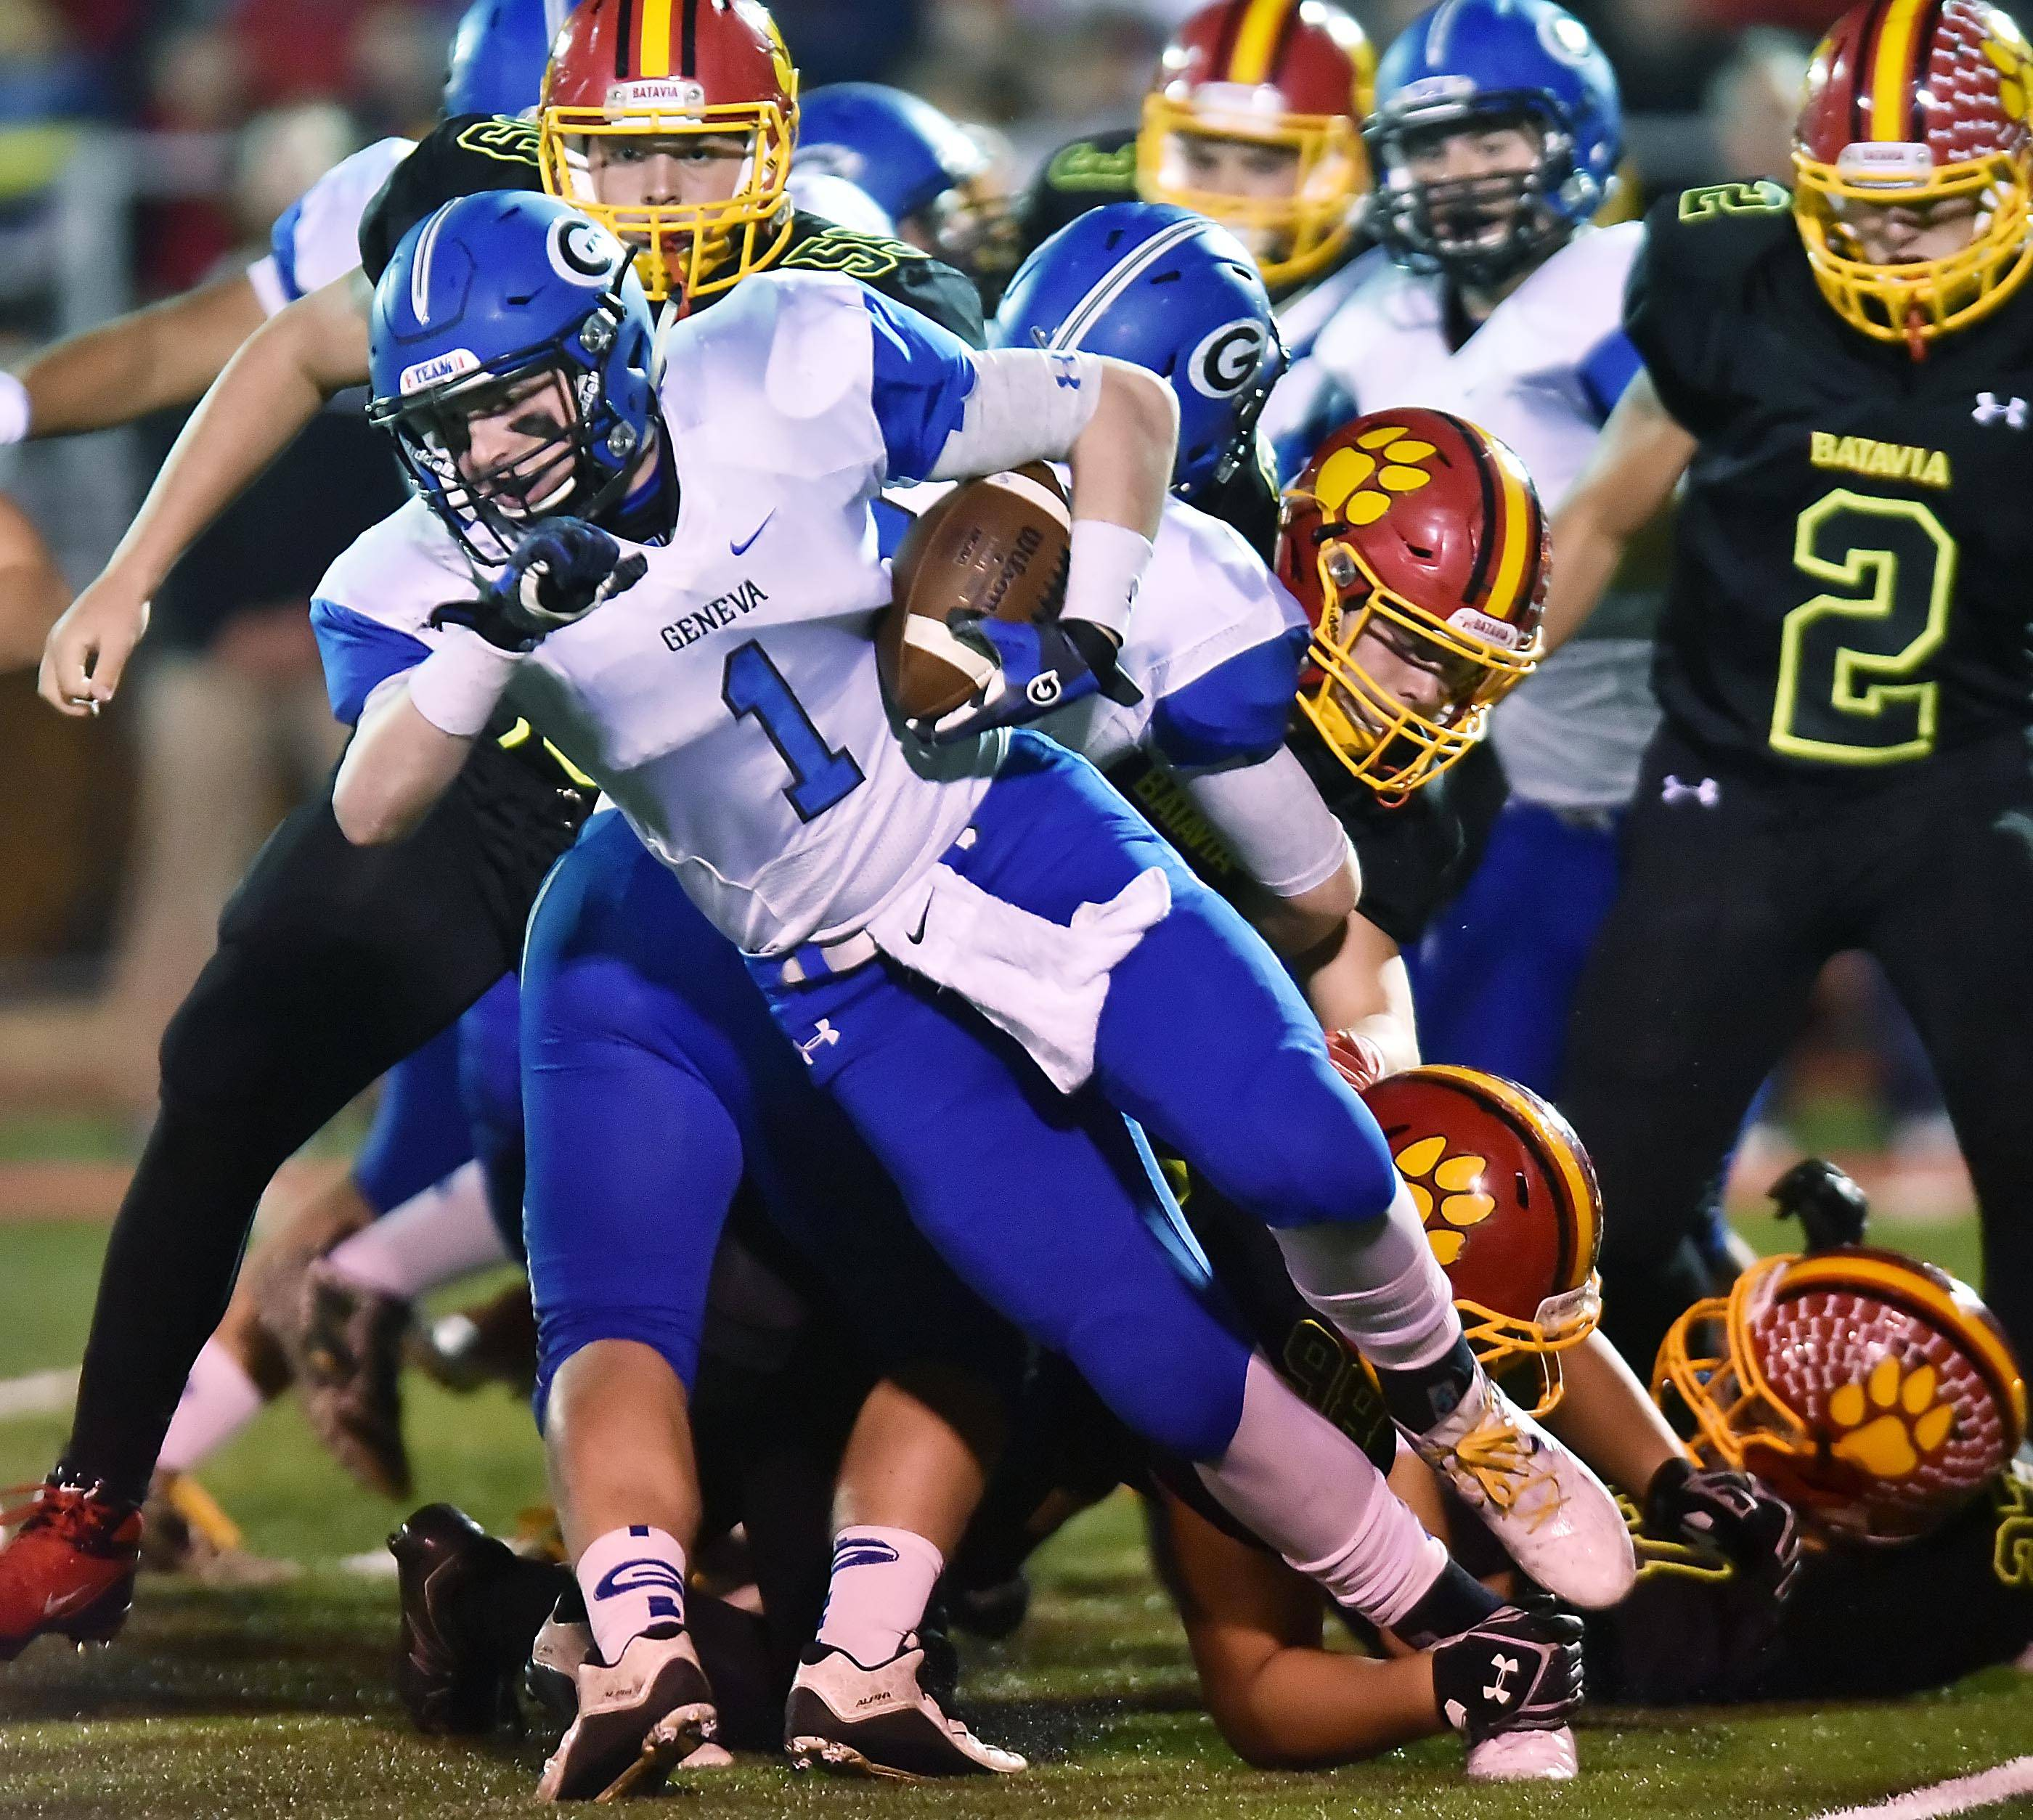 The National Federation of State High Schools wants to protect the tradition of Friday night football, like this game between Geneva and Batavia, from being run over by an increase in college games on Friday nights.